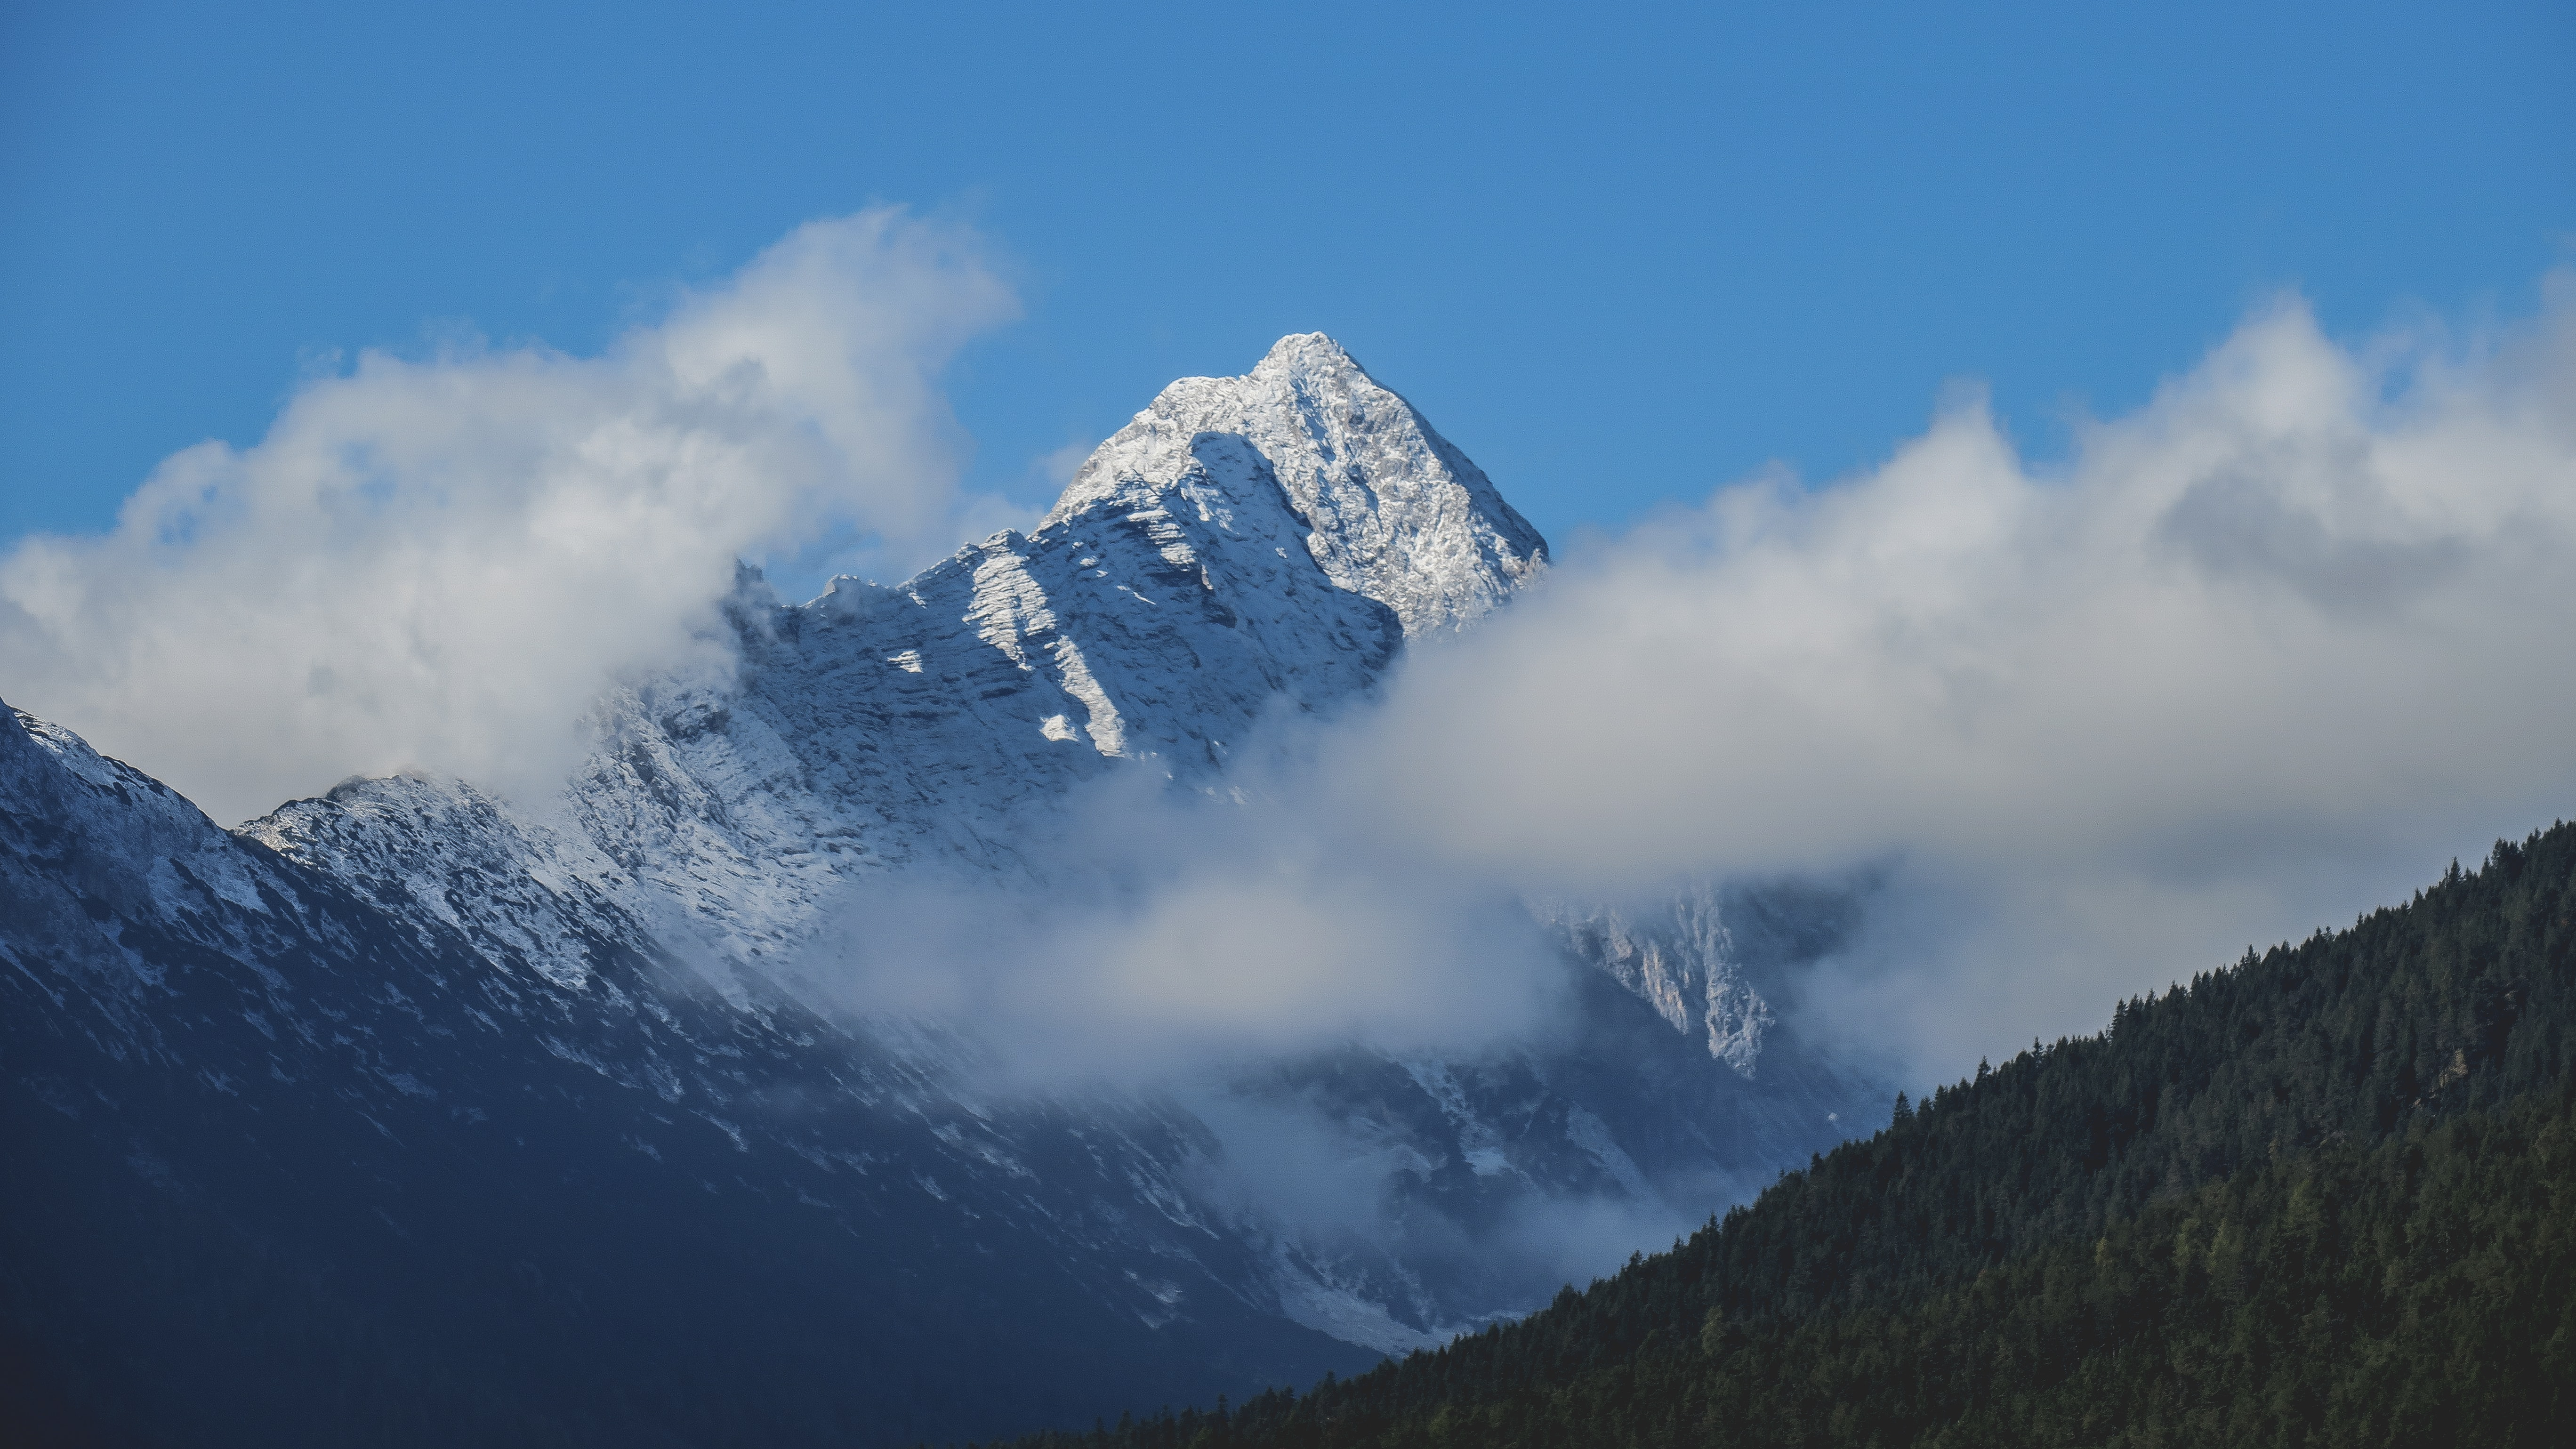 A snowy mountain peak rising up between thick clouds in Leutasch